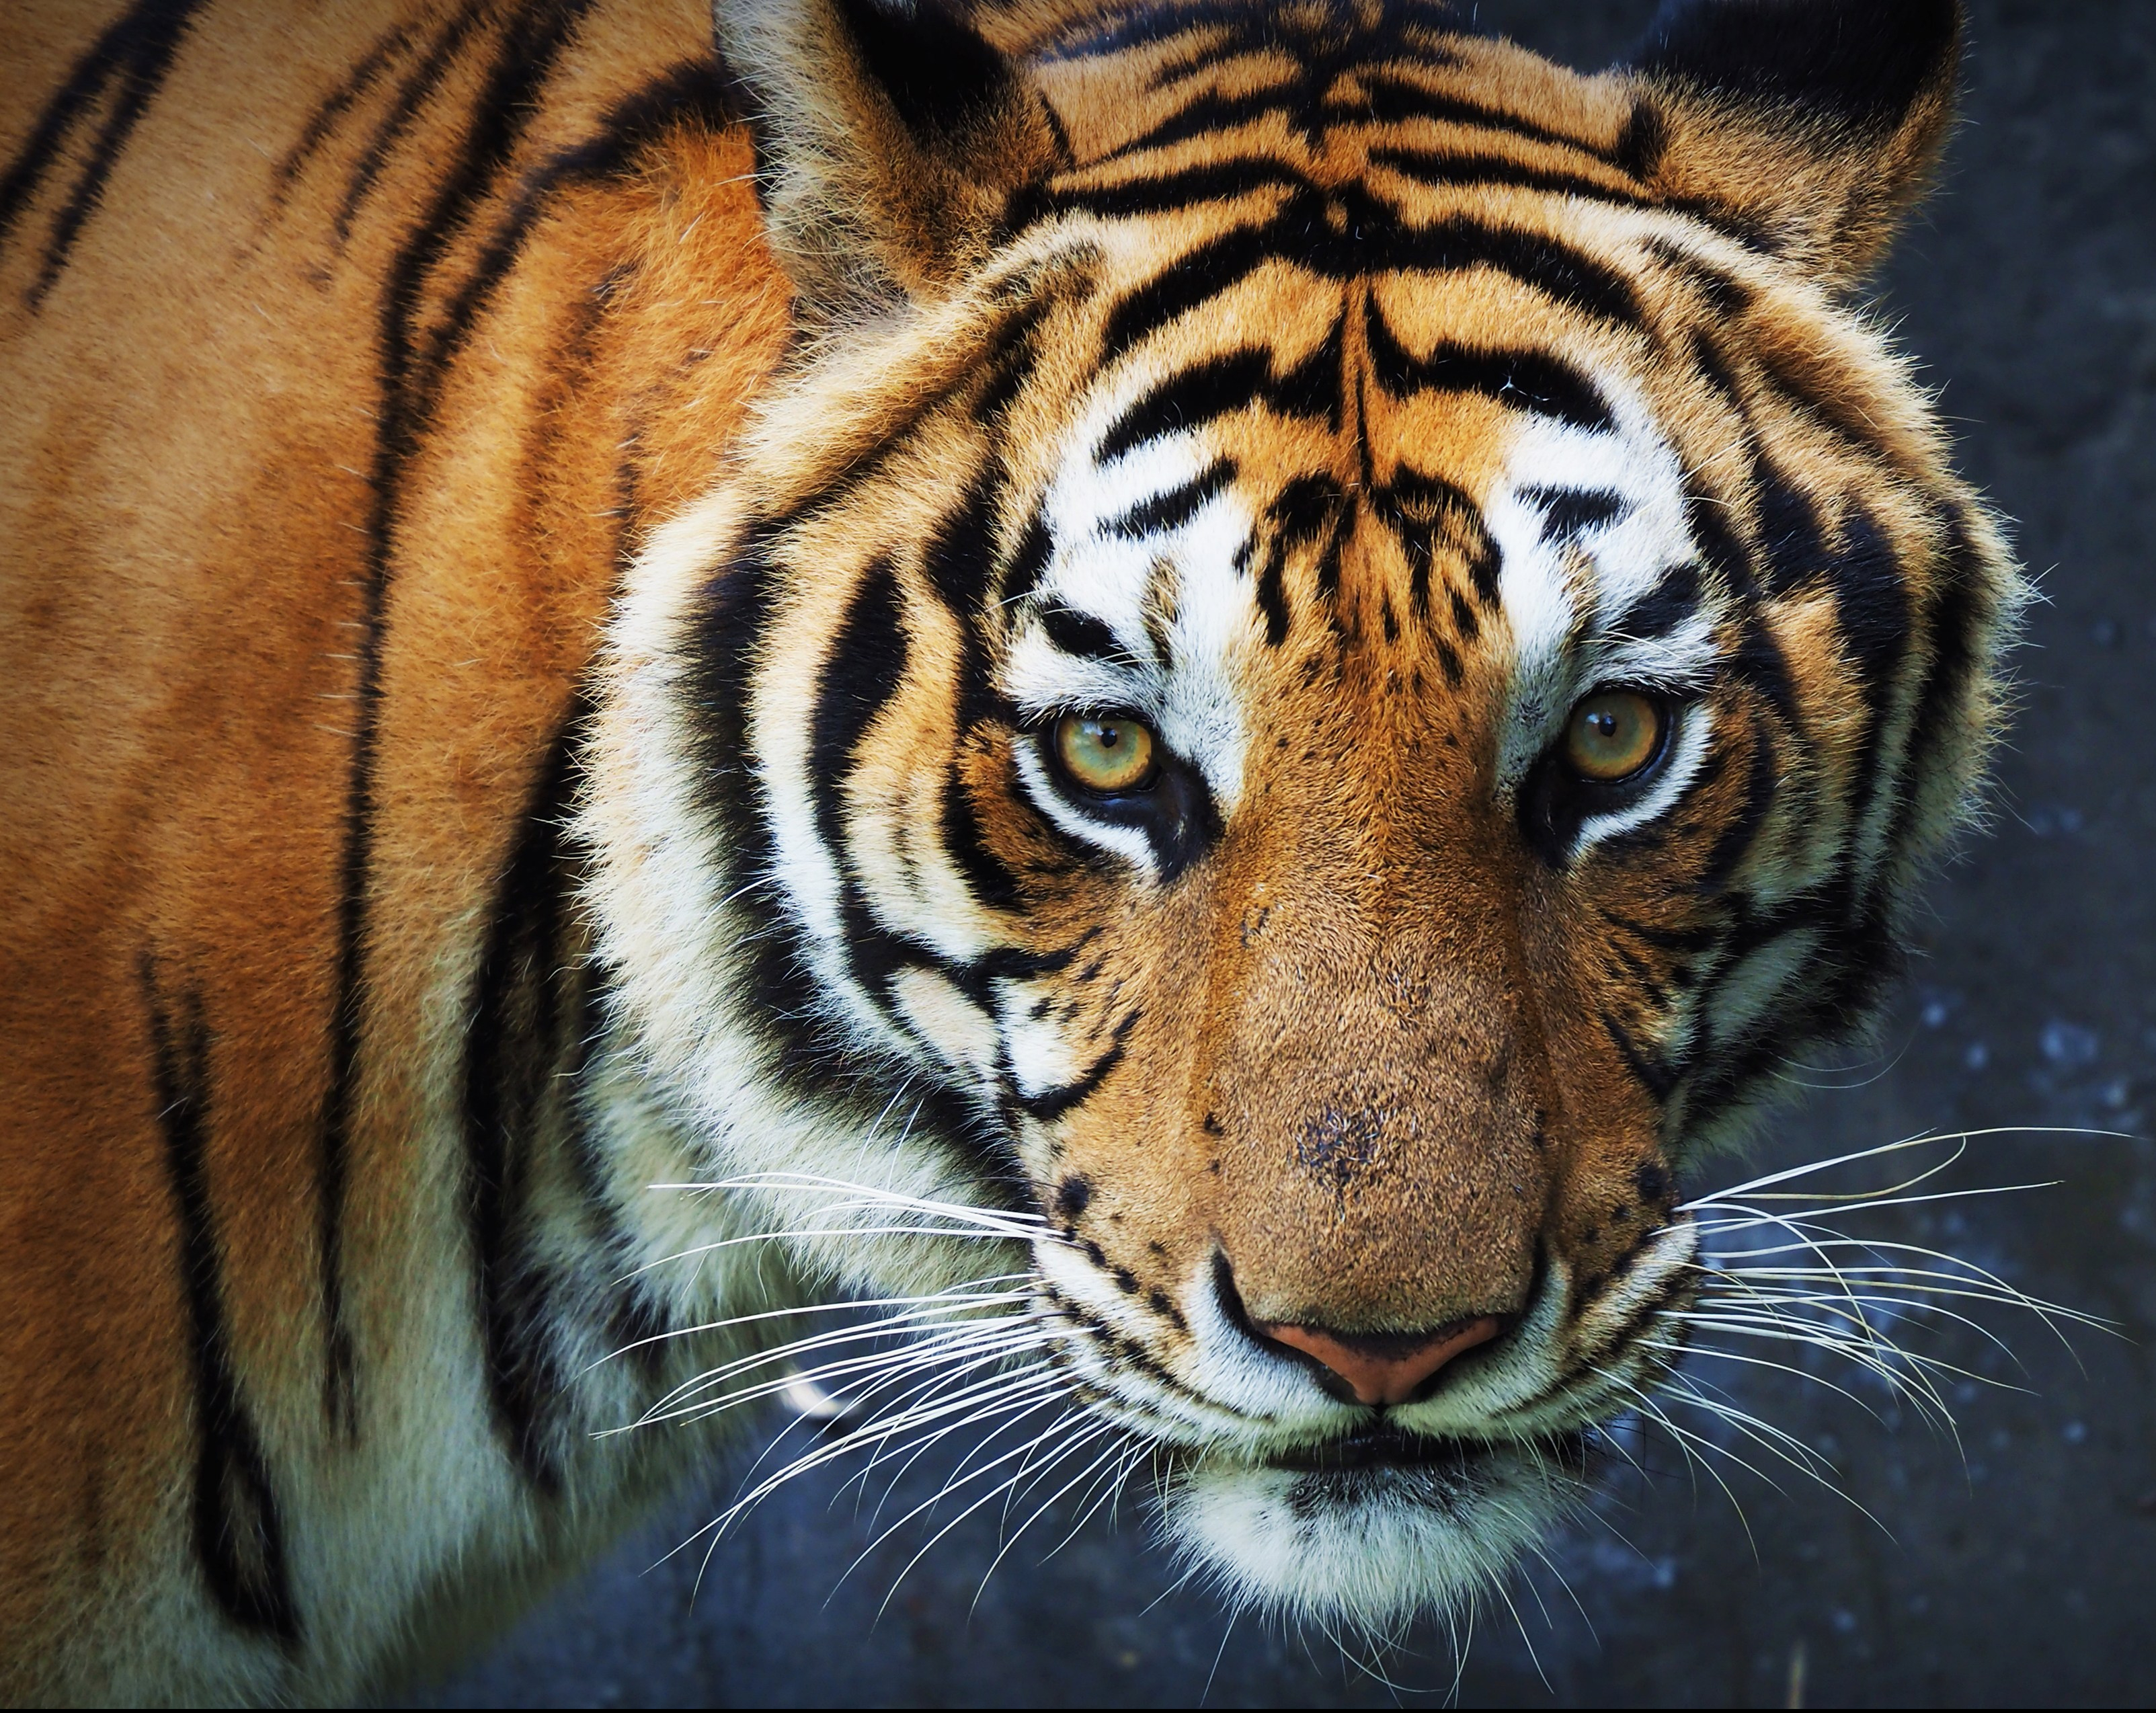 Tiger in Thailand zoo